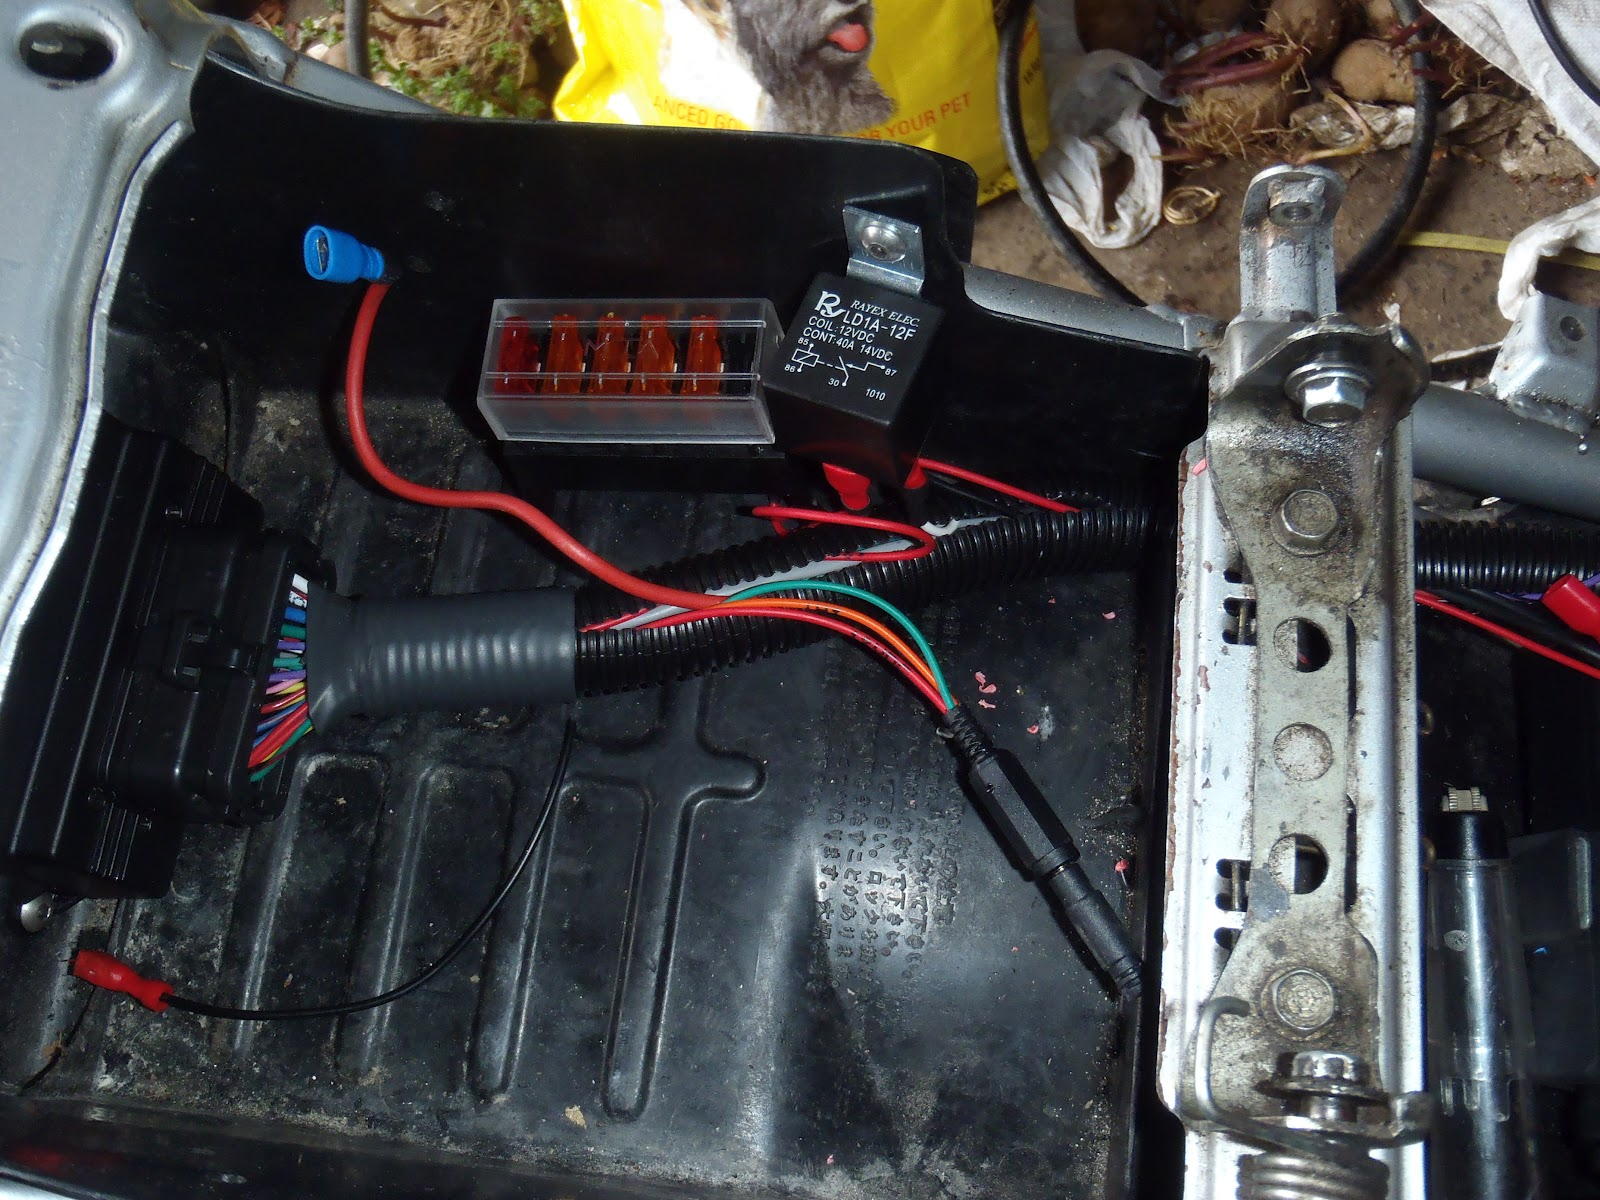 Cbr250rr Efi Conversion With Microsquirt 2012 Honda Cbr250ra Wiring Diagram I Took The Opportunity To Wire Up Whatever Sensors Had At This Point Aswel Tapped Into Wires From Vr Sensor Crank Rotor For An Rpm Signal